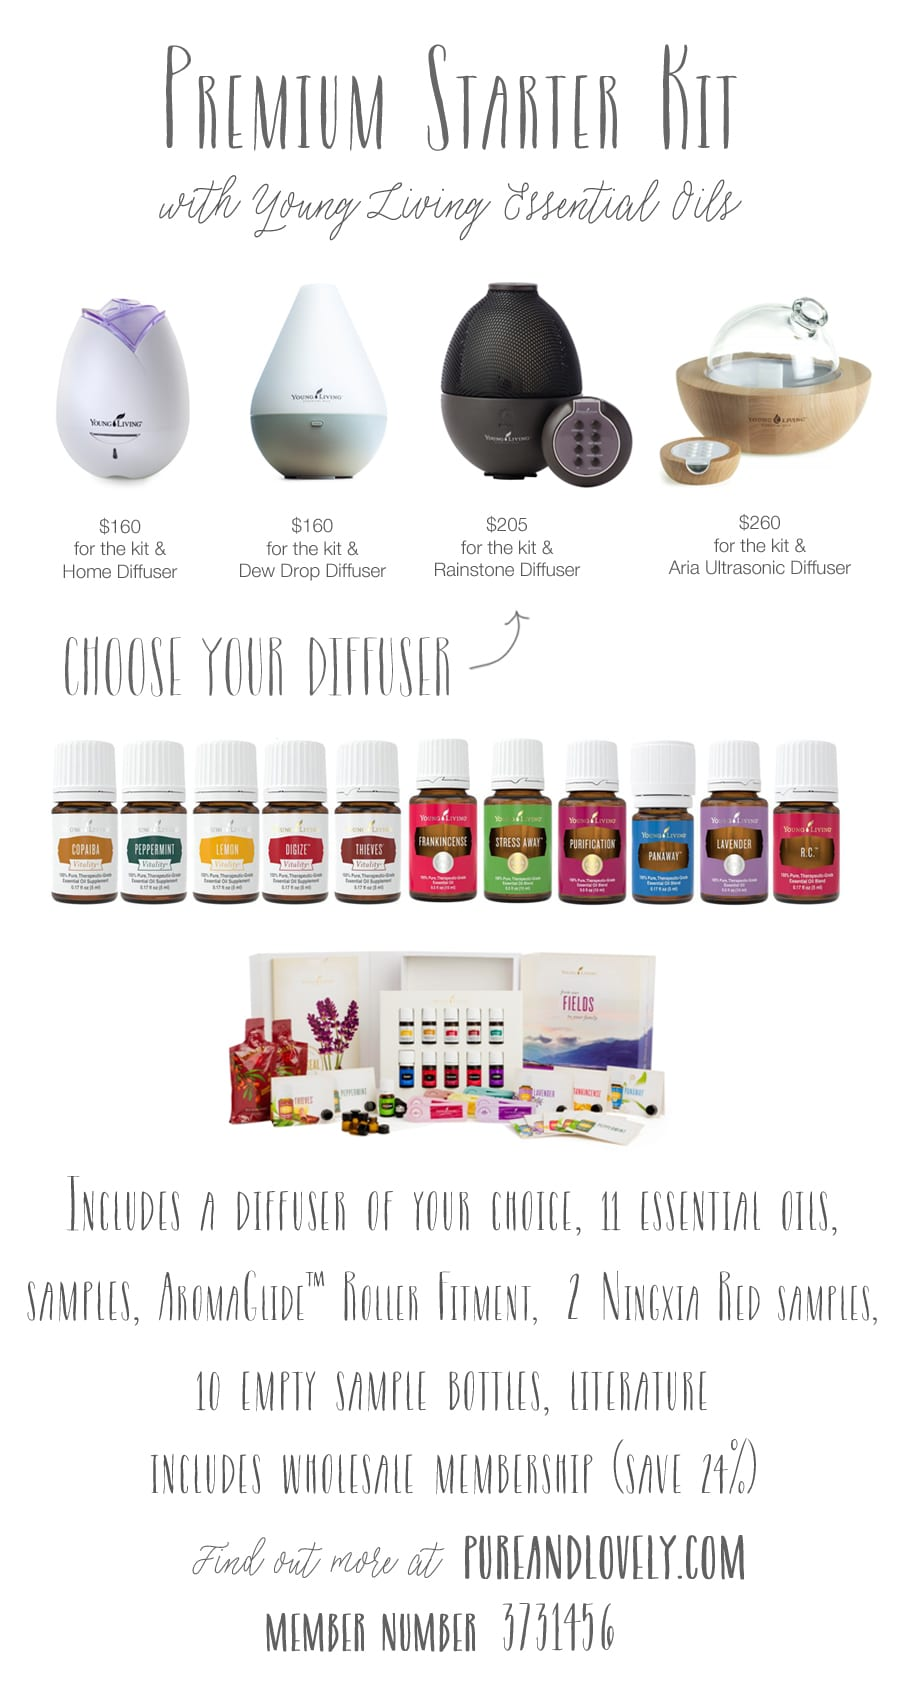 Get this amazing essential oils starter kit as a Young Living Wholesale Customer and join my community at Pure & Lovely!